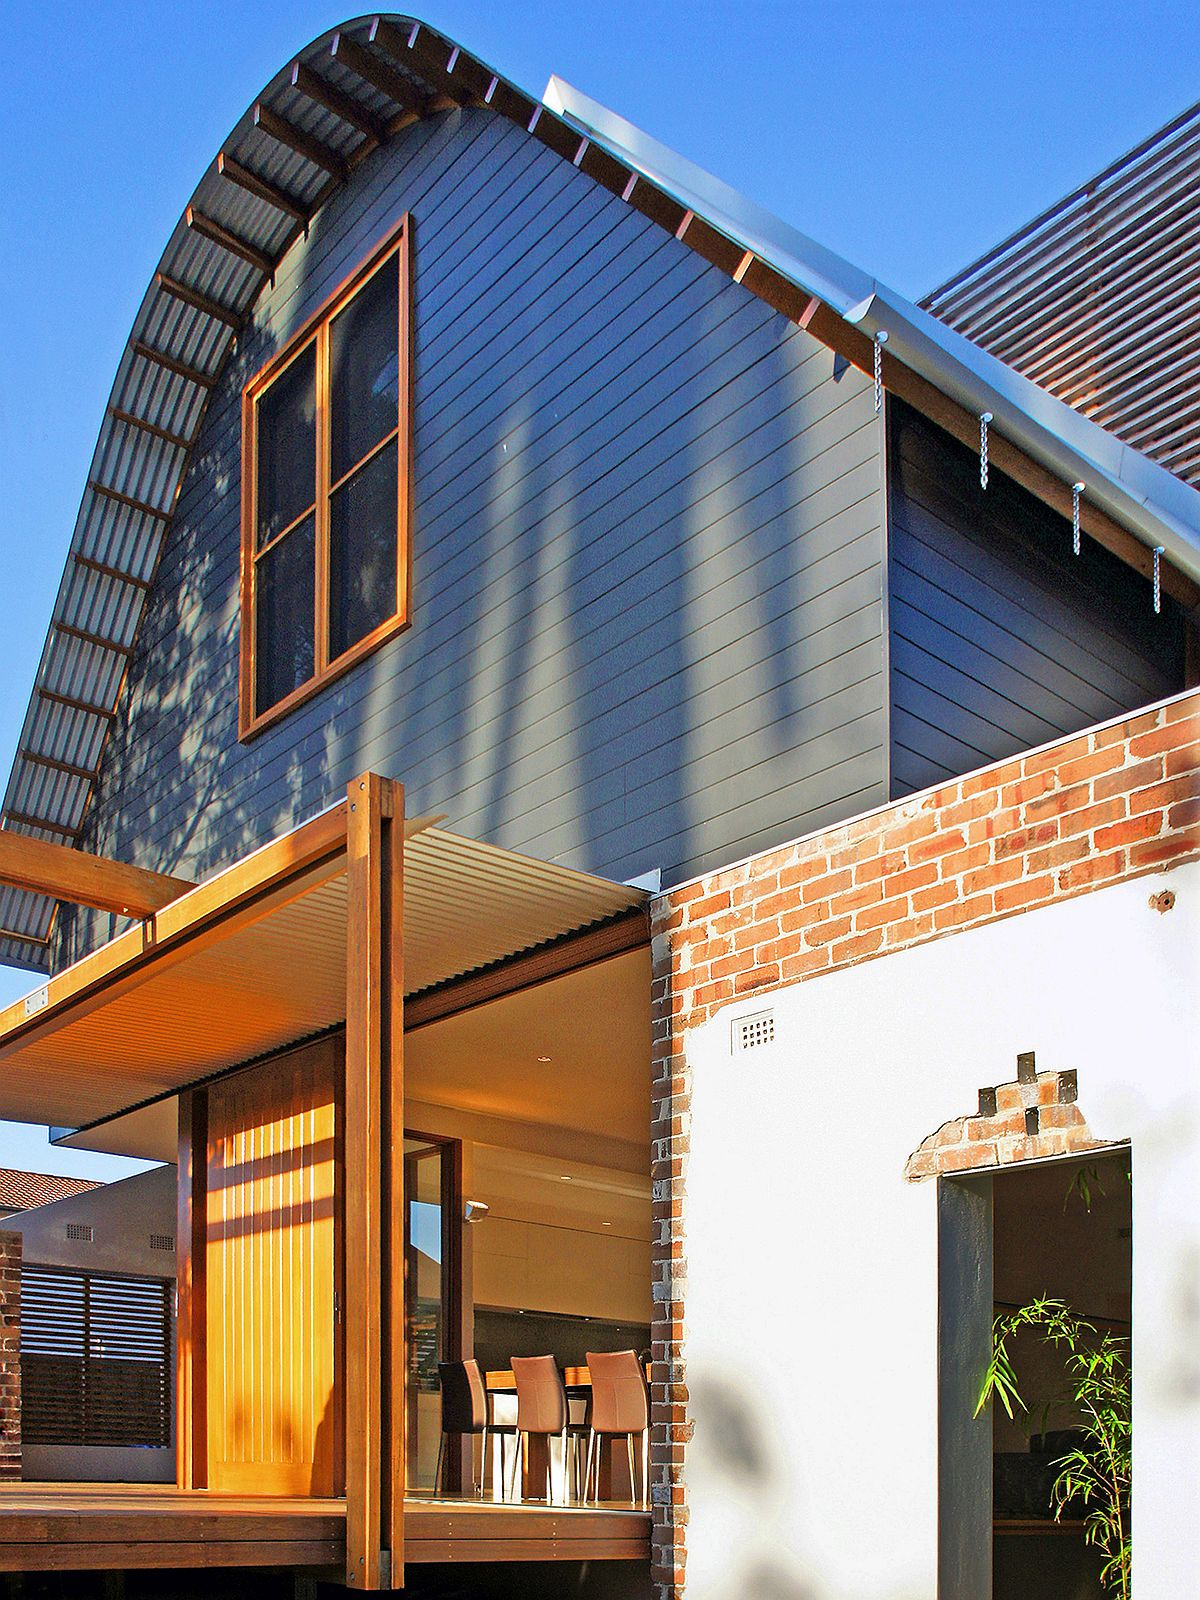 Gray-and-brick-exterior-of-the-revitalized-1920s-Sydney-house-90148